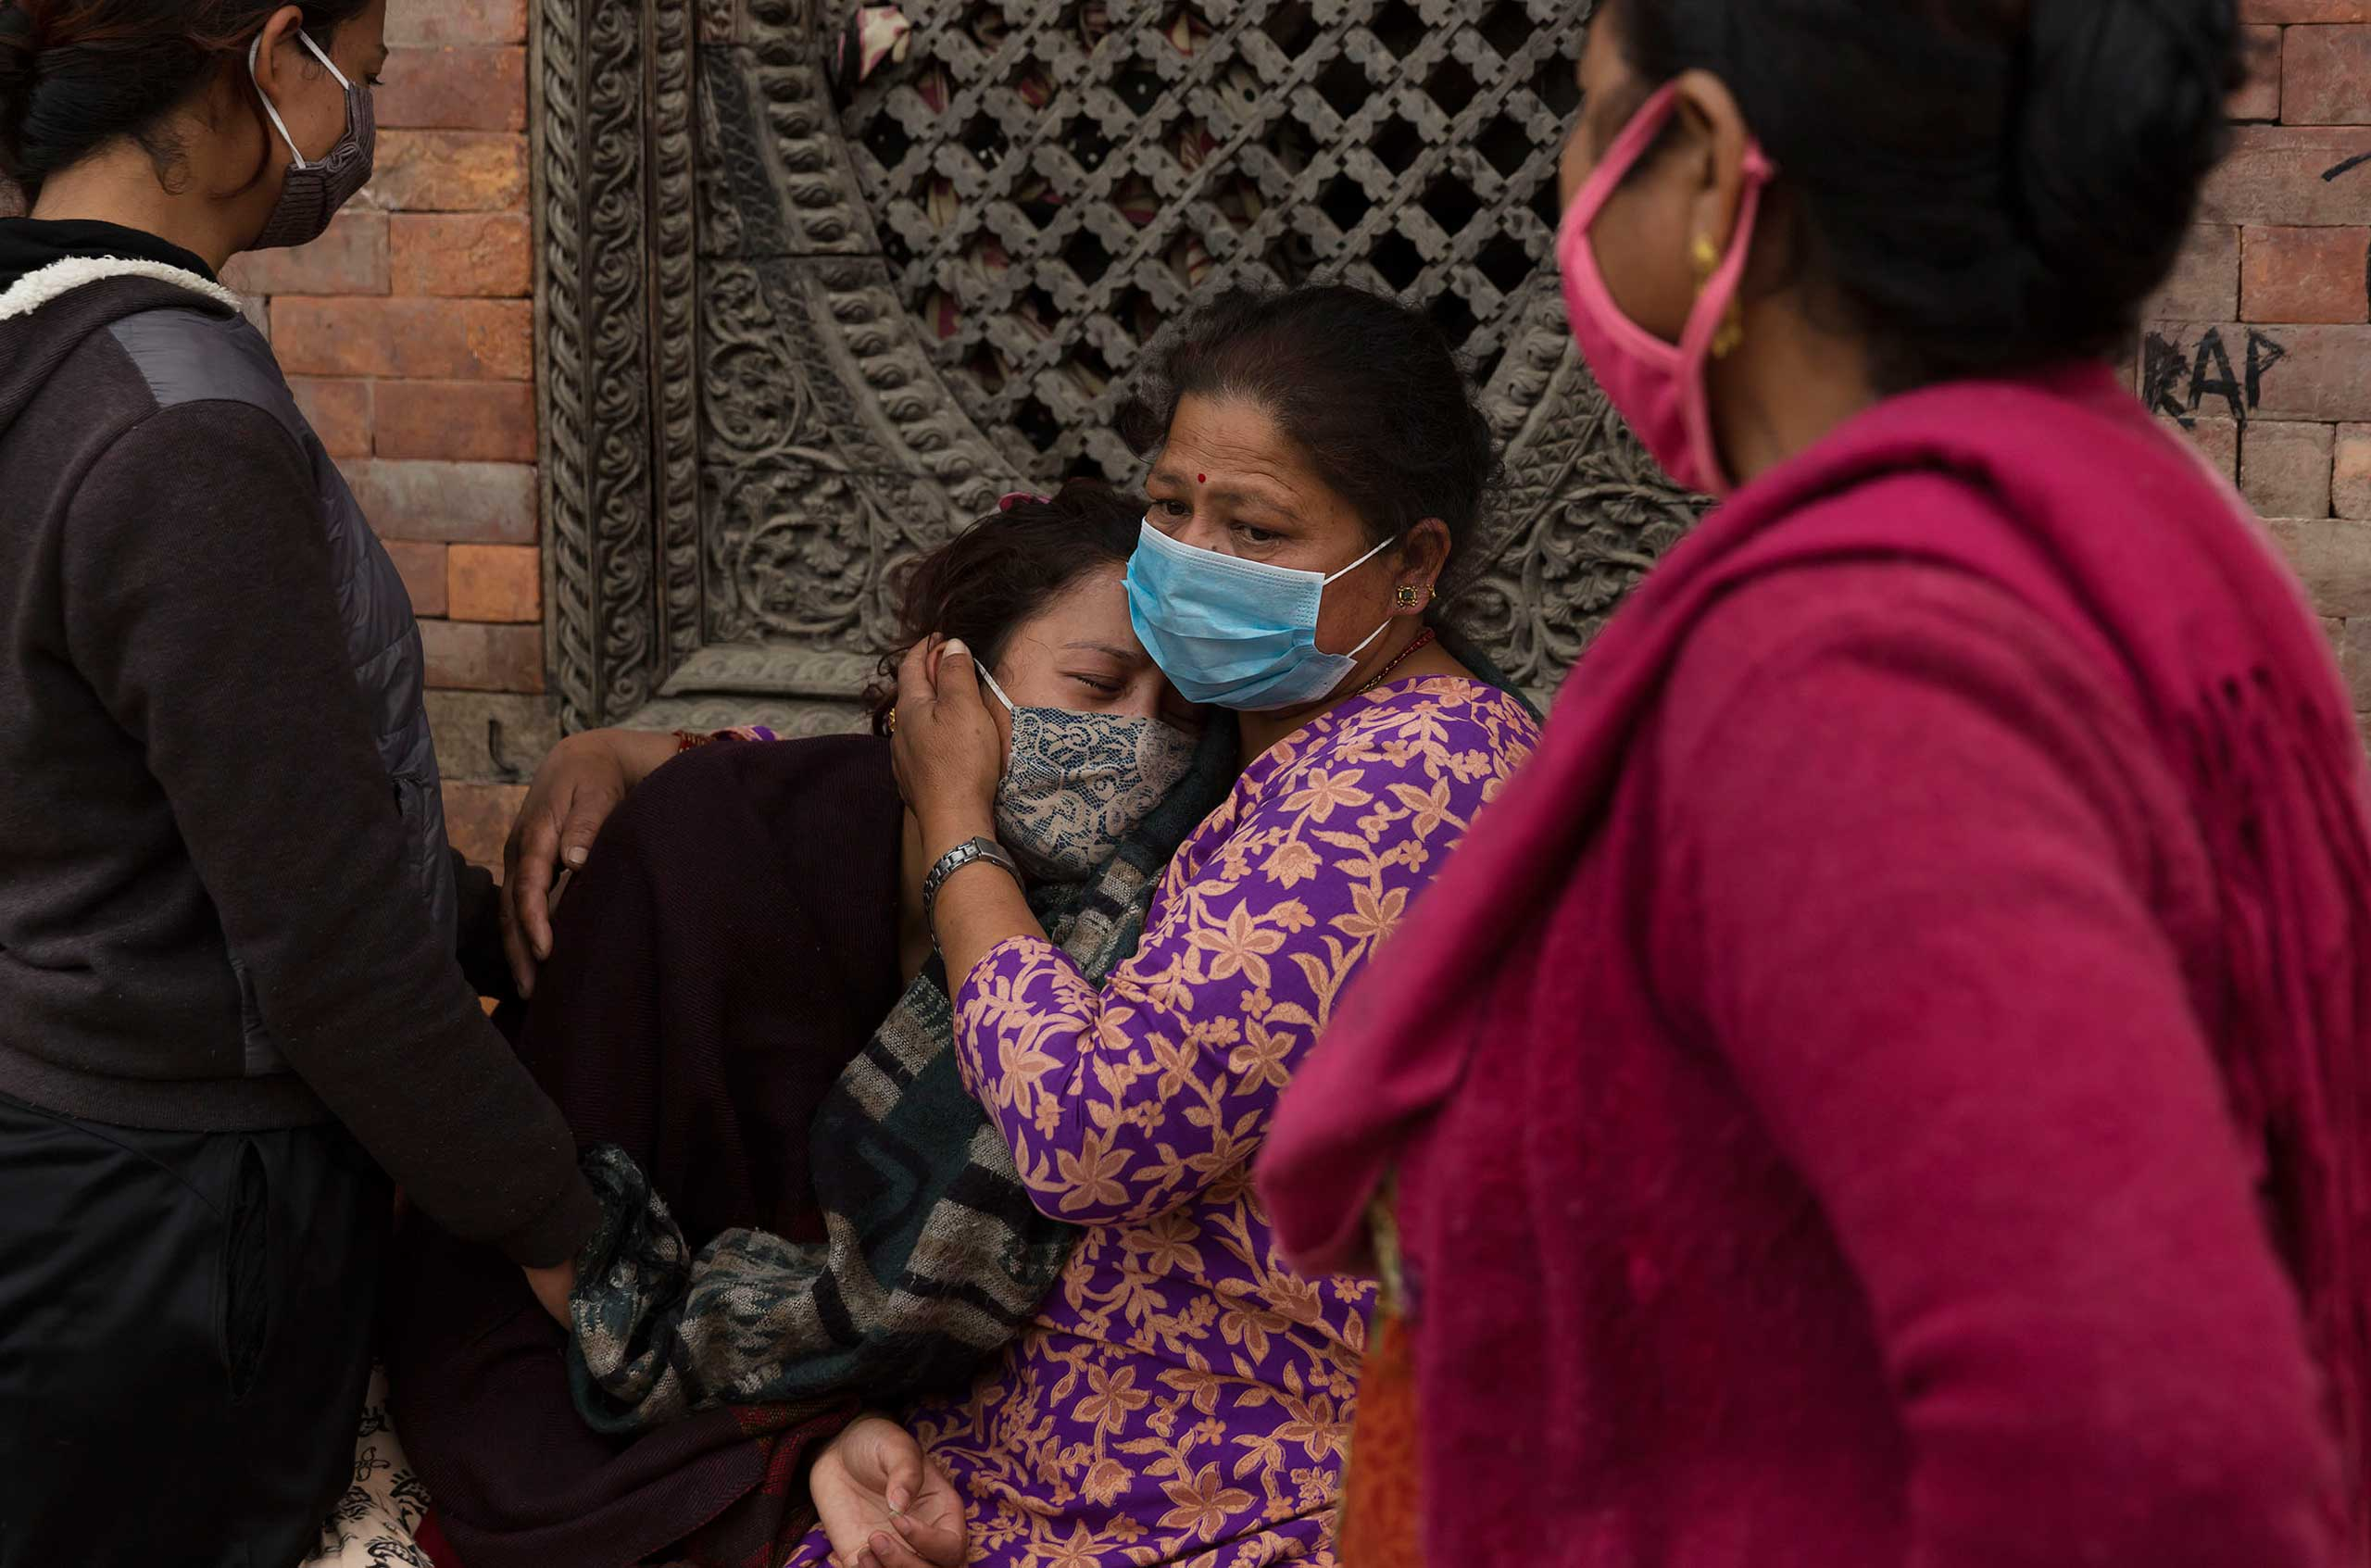 During funeral rites in Kathmandu on April 28, 2015, women mourn for loved ones killed in the earthquake.